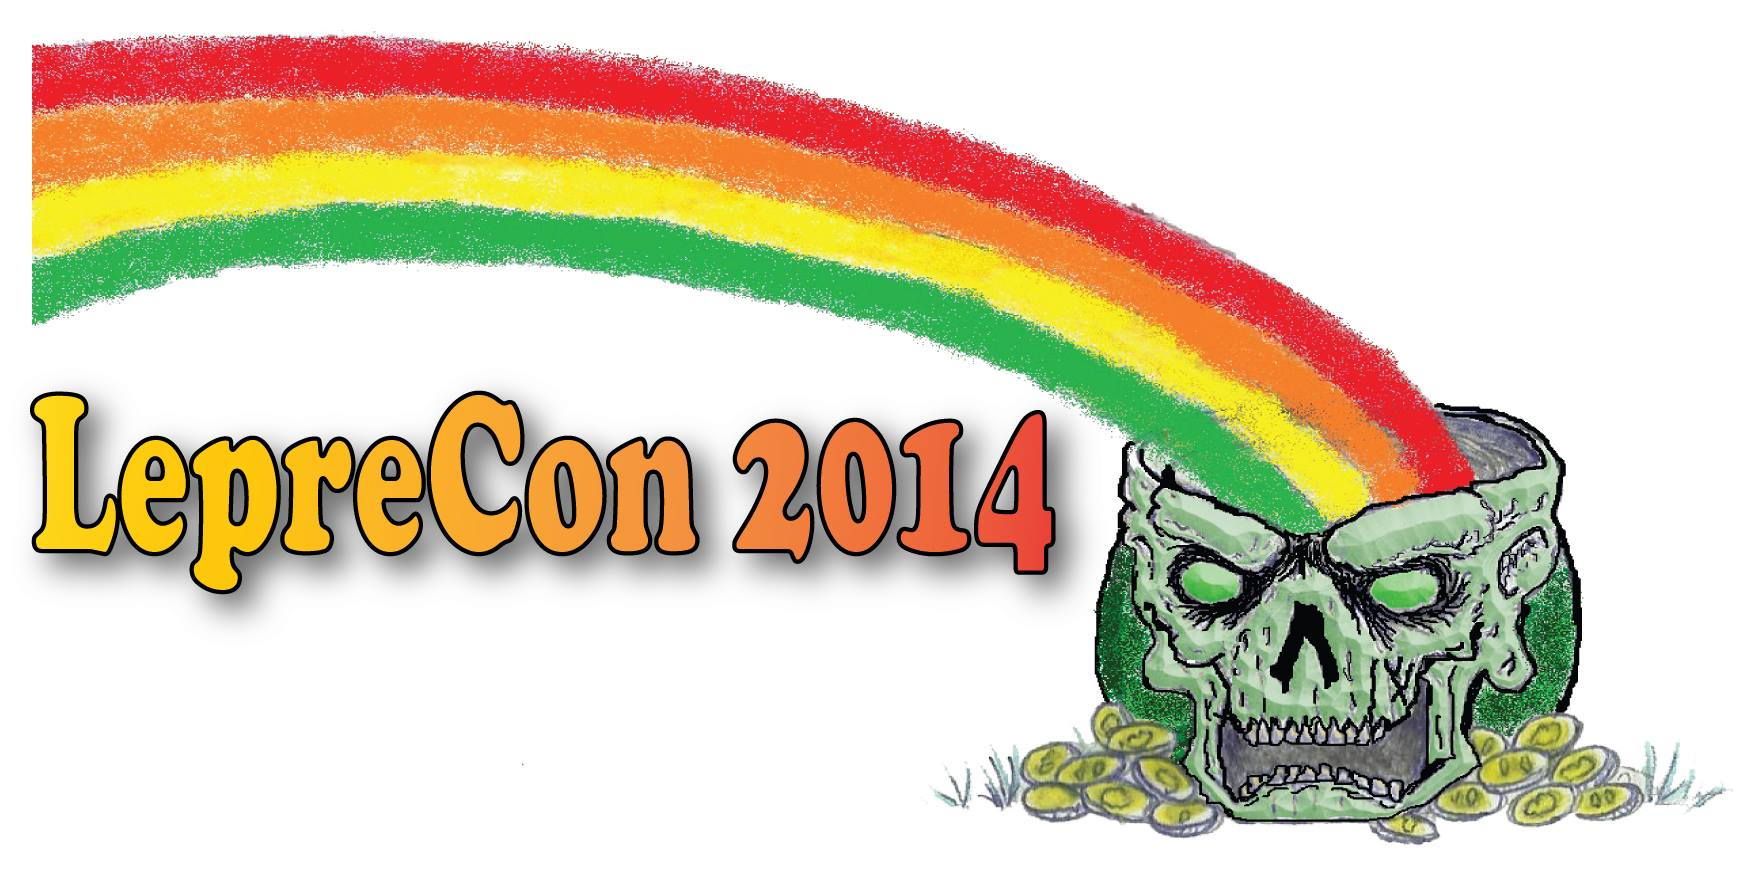 Episode 60b - In  A Hurry After The Con, or They're Always After Me LepreCons!